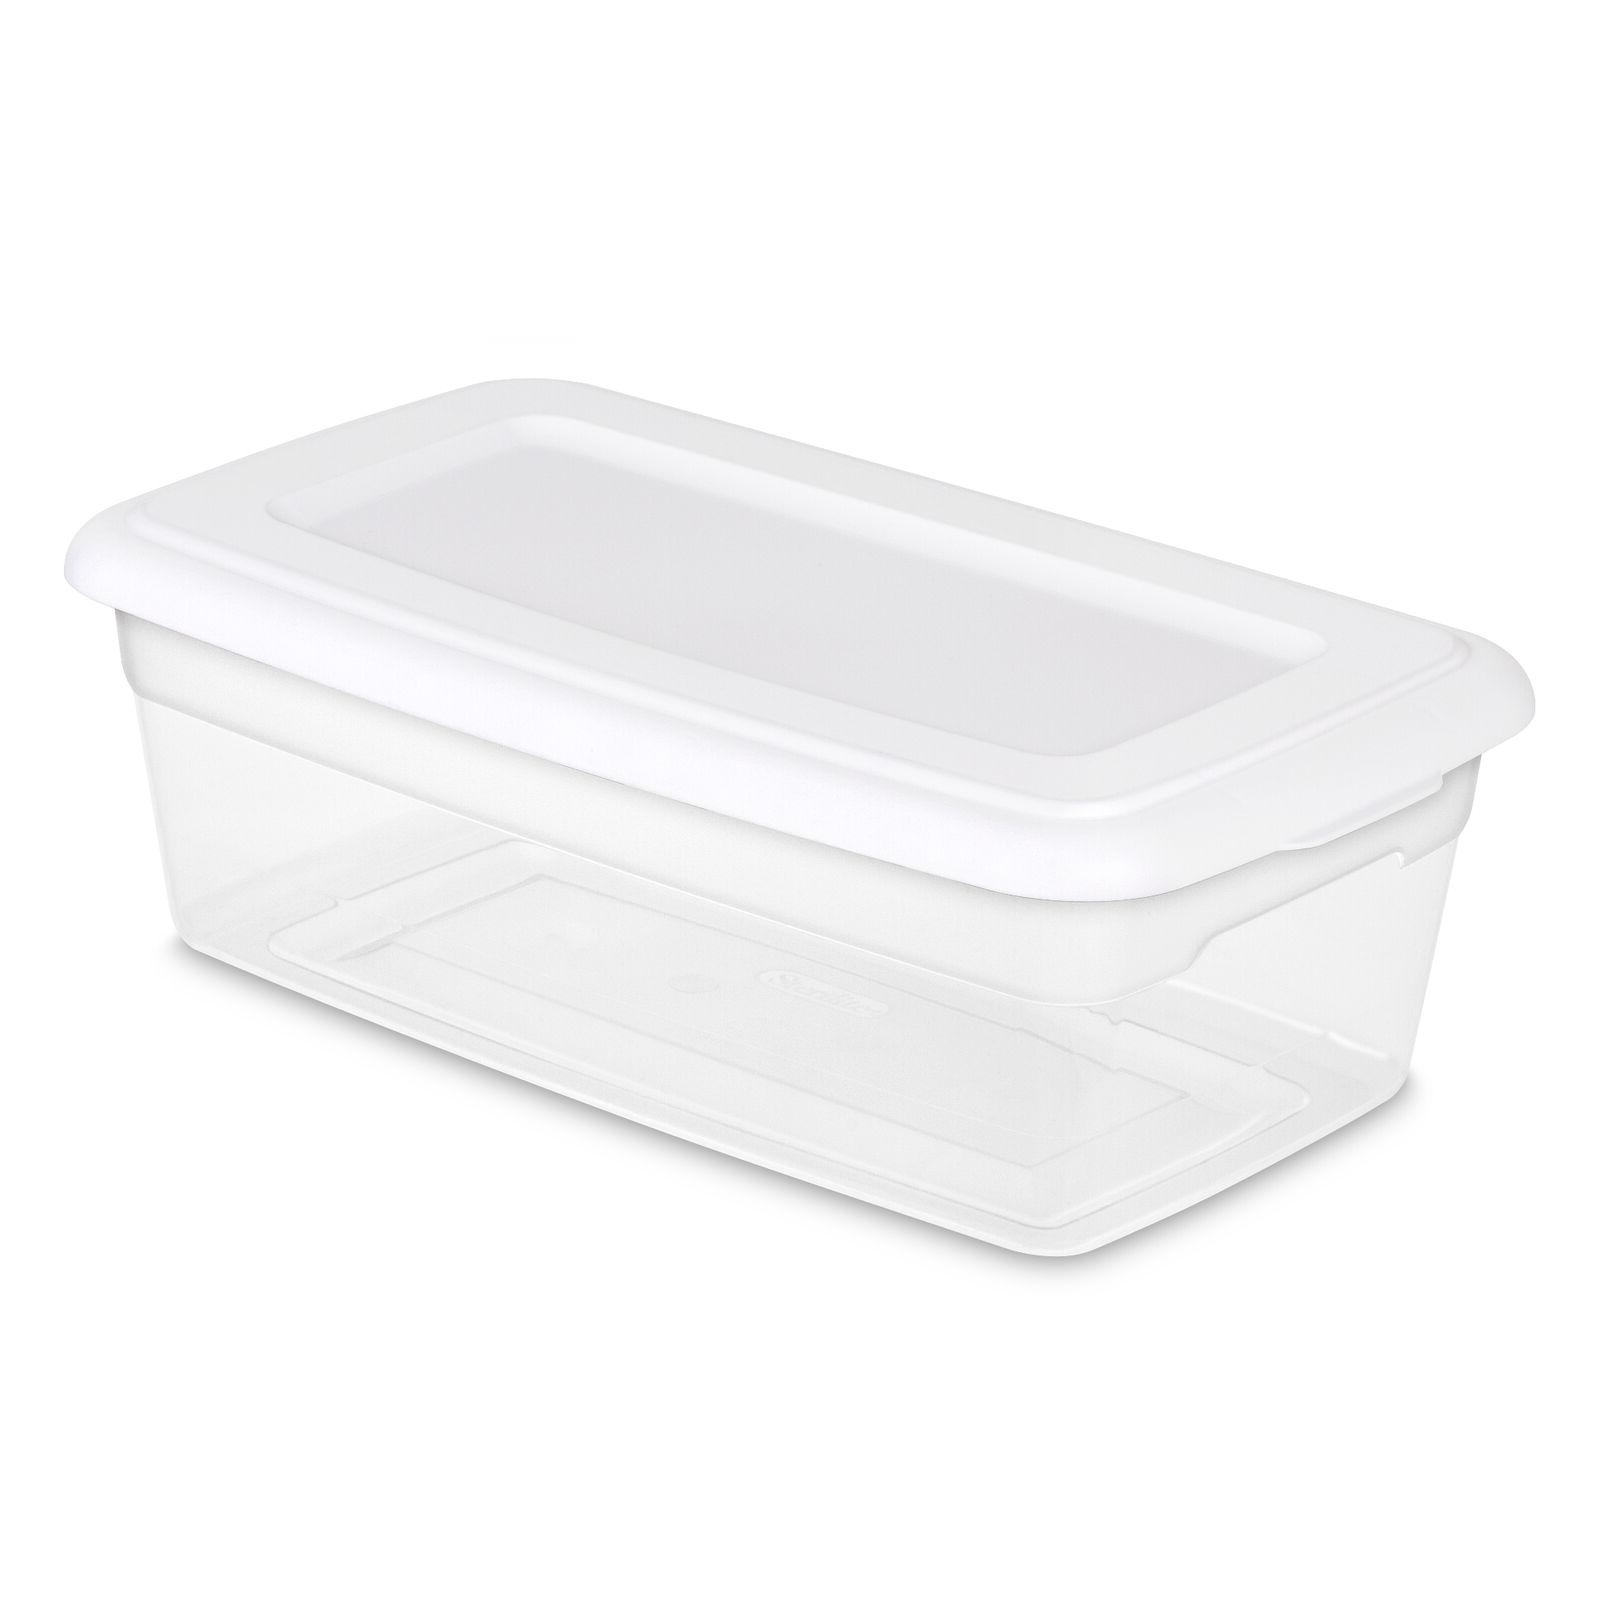 36 PACK Box 6 Quart Case Clear Stackable Lid